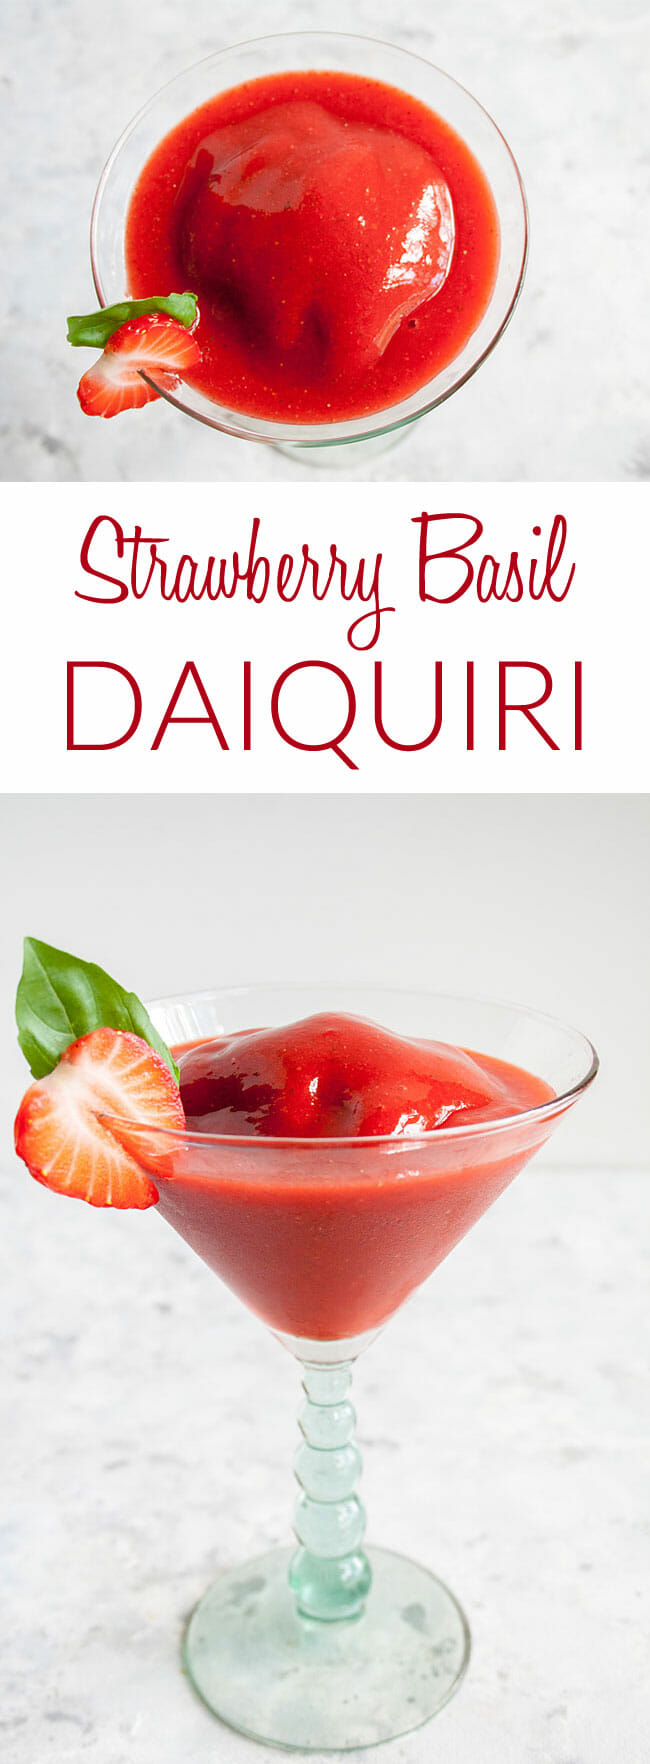 Frozen Strawberry Daiquiri collage photo with text.